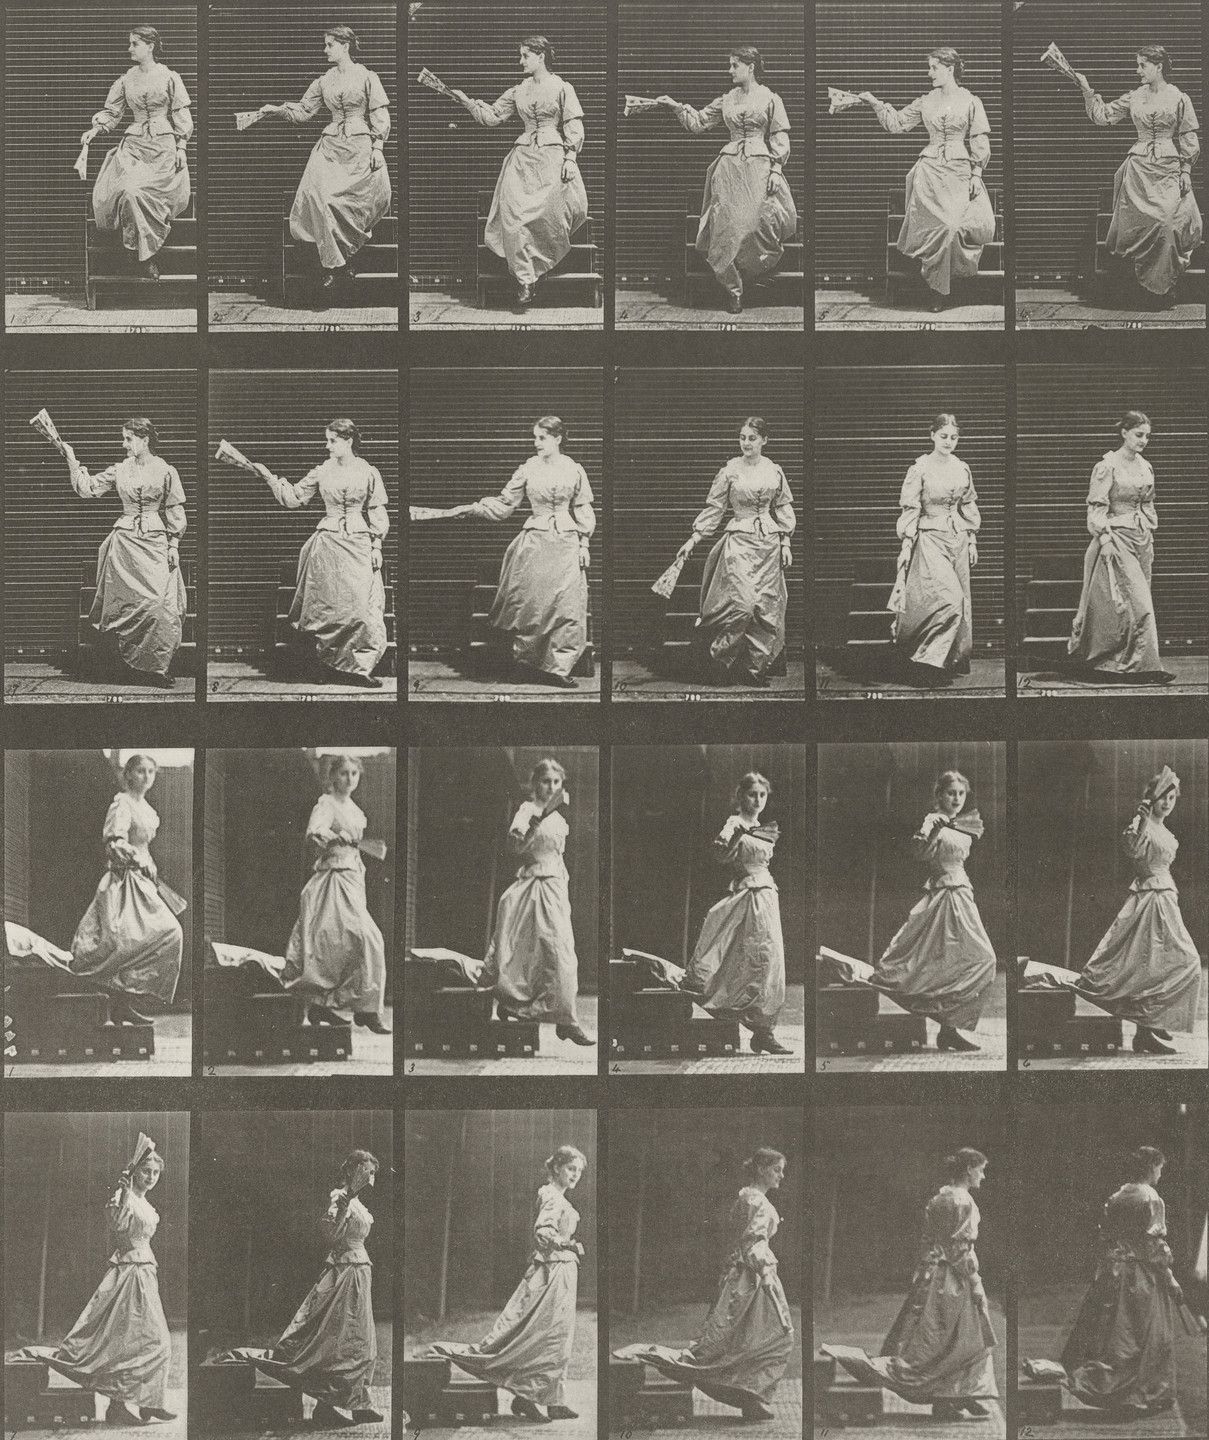 Eadweard J. Muybridge. Woman Descending Stairs, Looking Around and Waving a Fan: Plate 140 from Animal Locomotion (1887). 1884-86